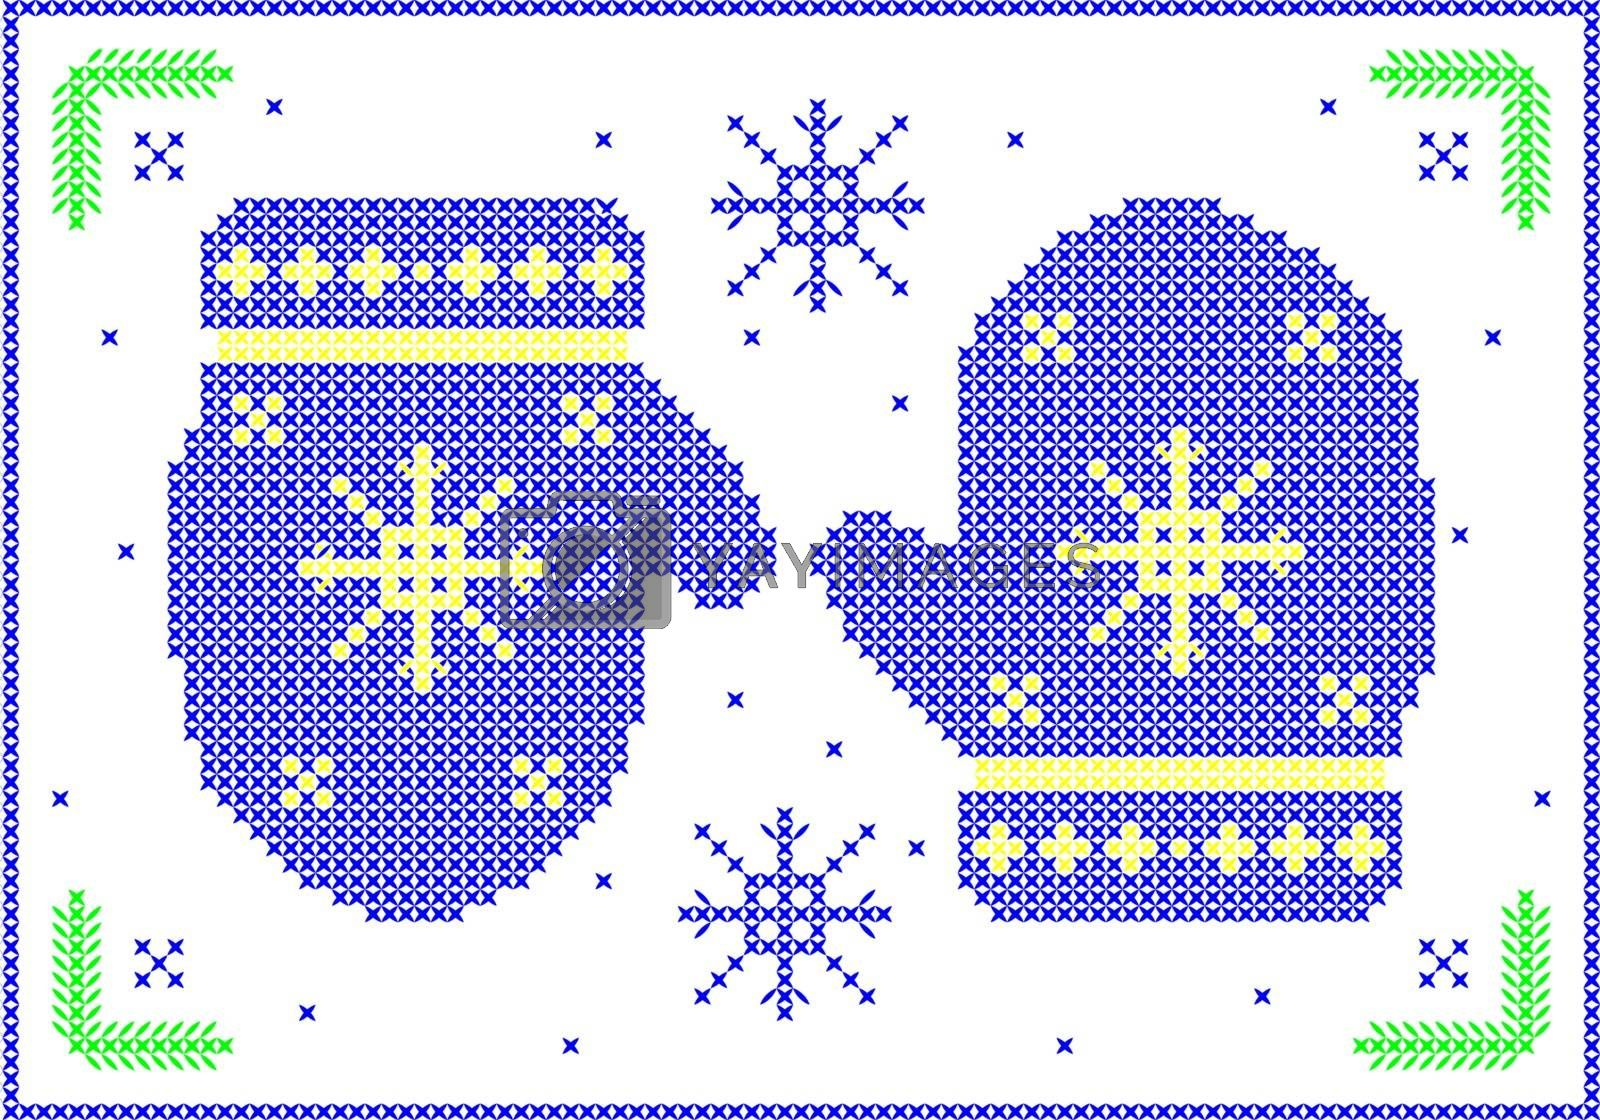 Cross-stitch winter mittens with snowflakes.